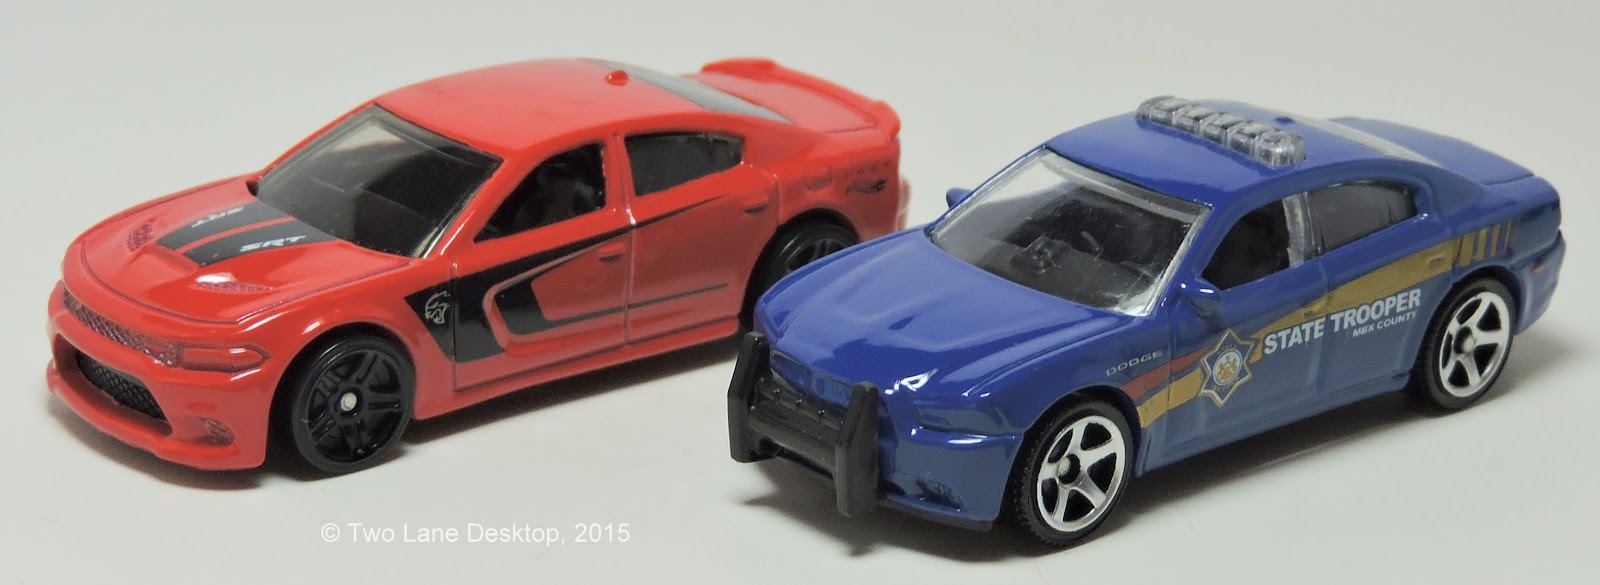 hot wheels red dodge charger hellcat 2016 photos